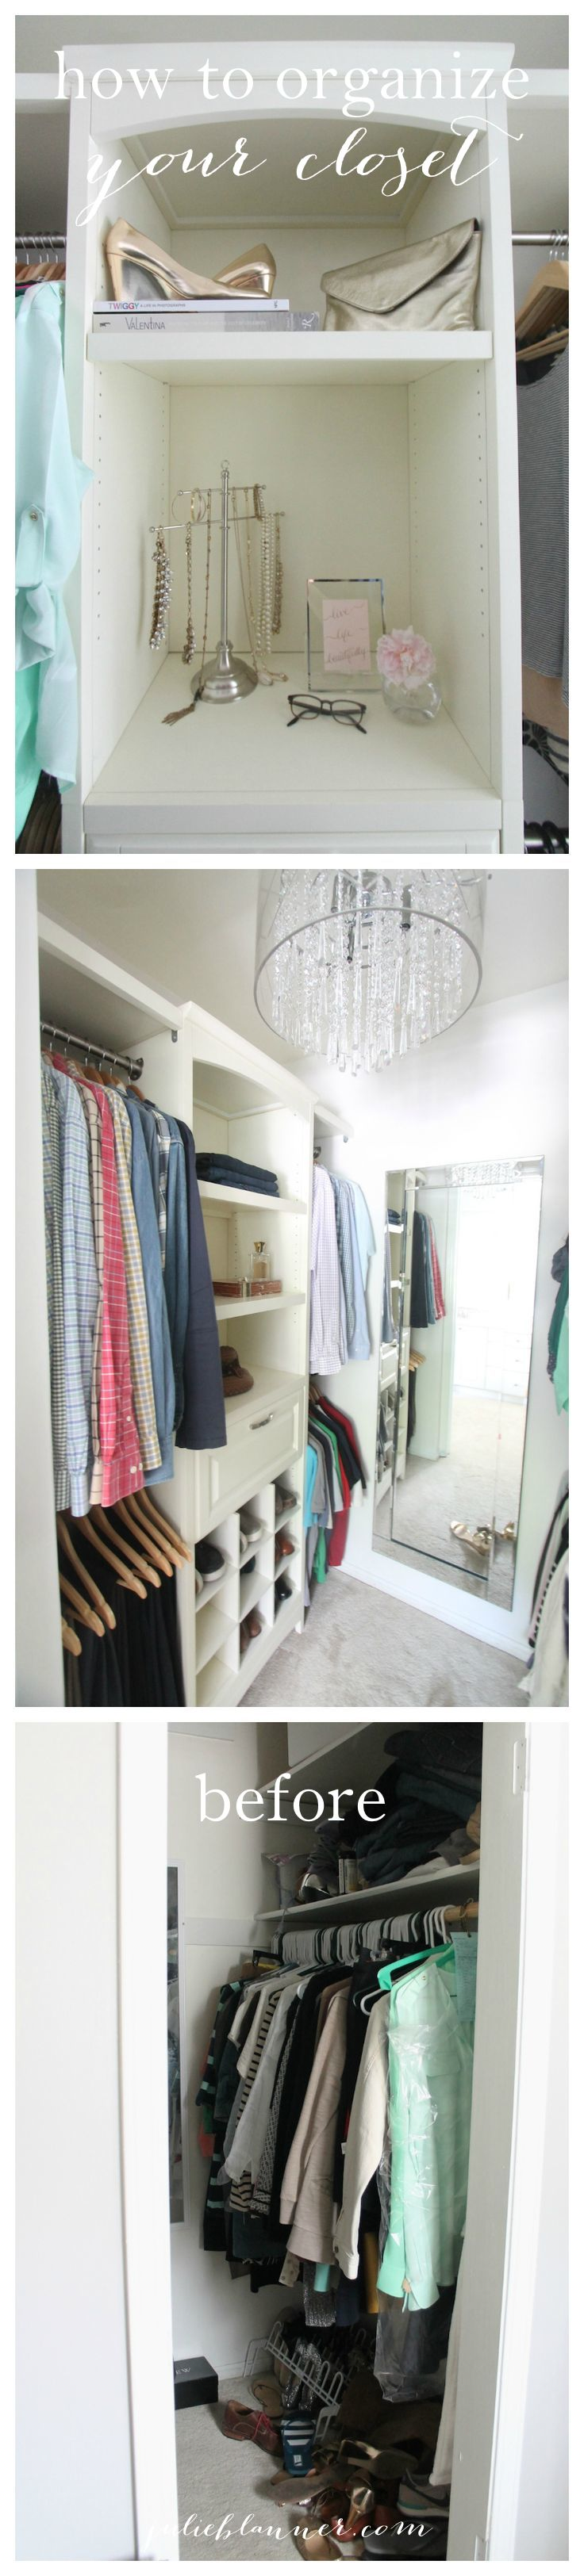 brisbane wardrobe rooms enchanting nursery gallery explore baby shelving quality designs closet design custom about pinterest online organization wardrobes images small highest and lookbook walk in divine handsome storage ideas for robe melbourne ide closets ikea choices